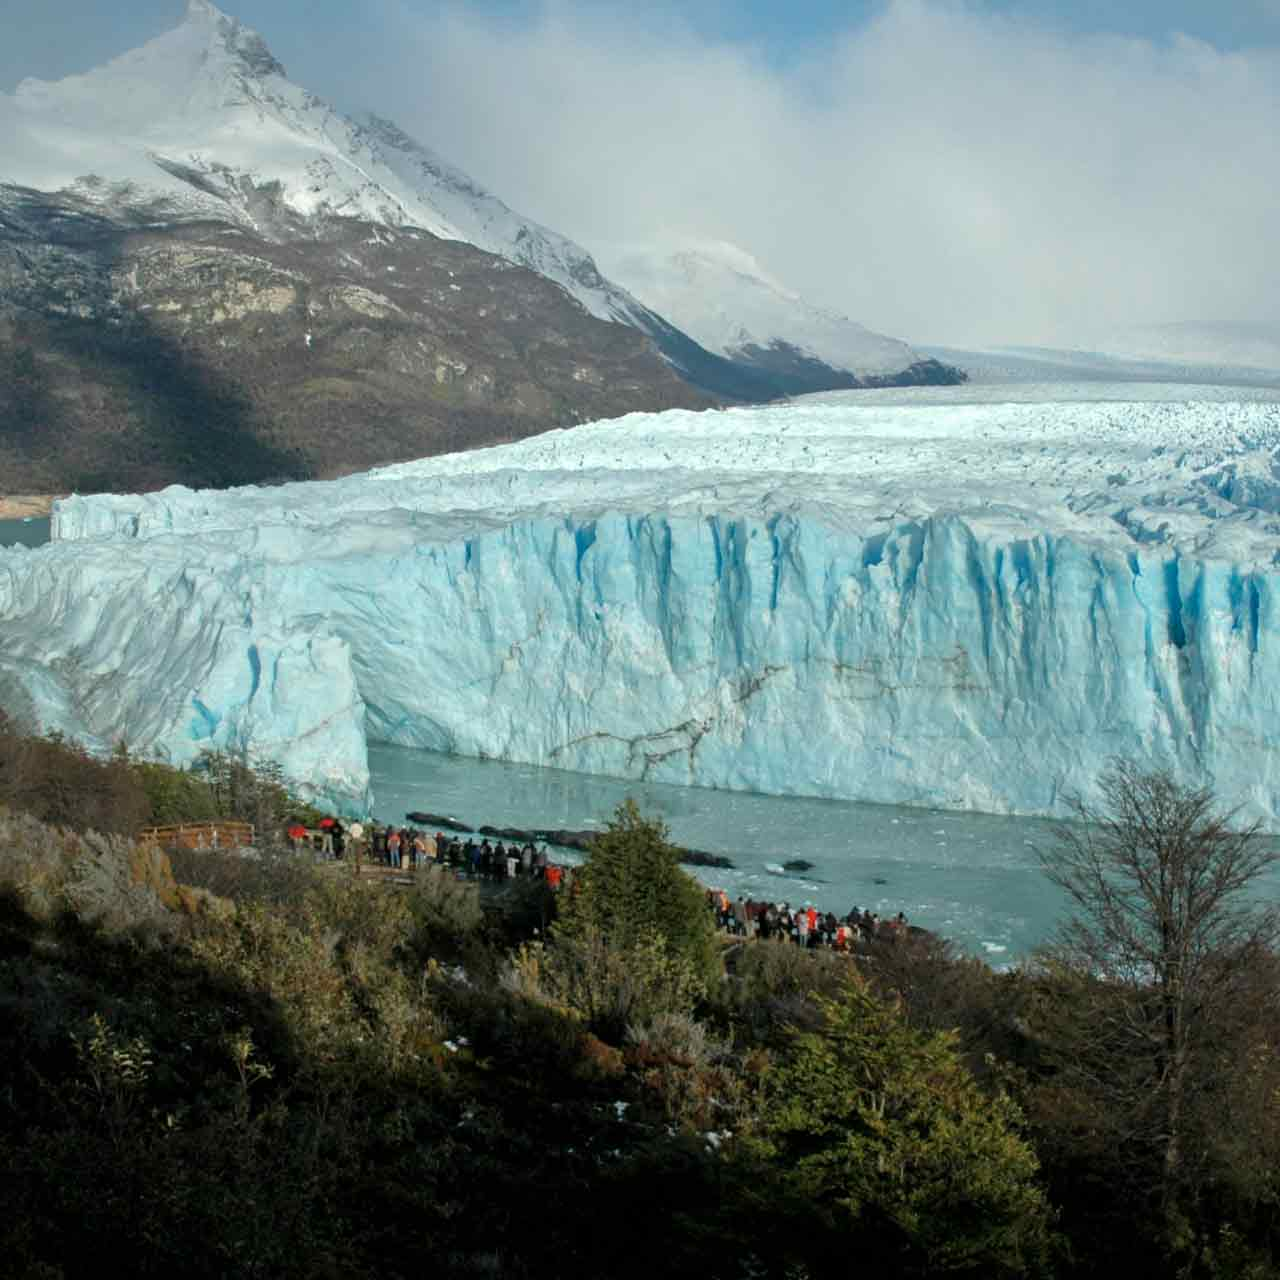 https://usercontent.one/wp/www.southtravelers.com/wp-content/uploads/2020/09/Argentina.jpg